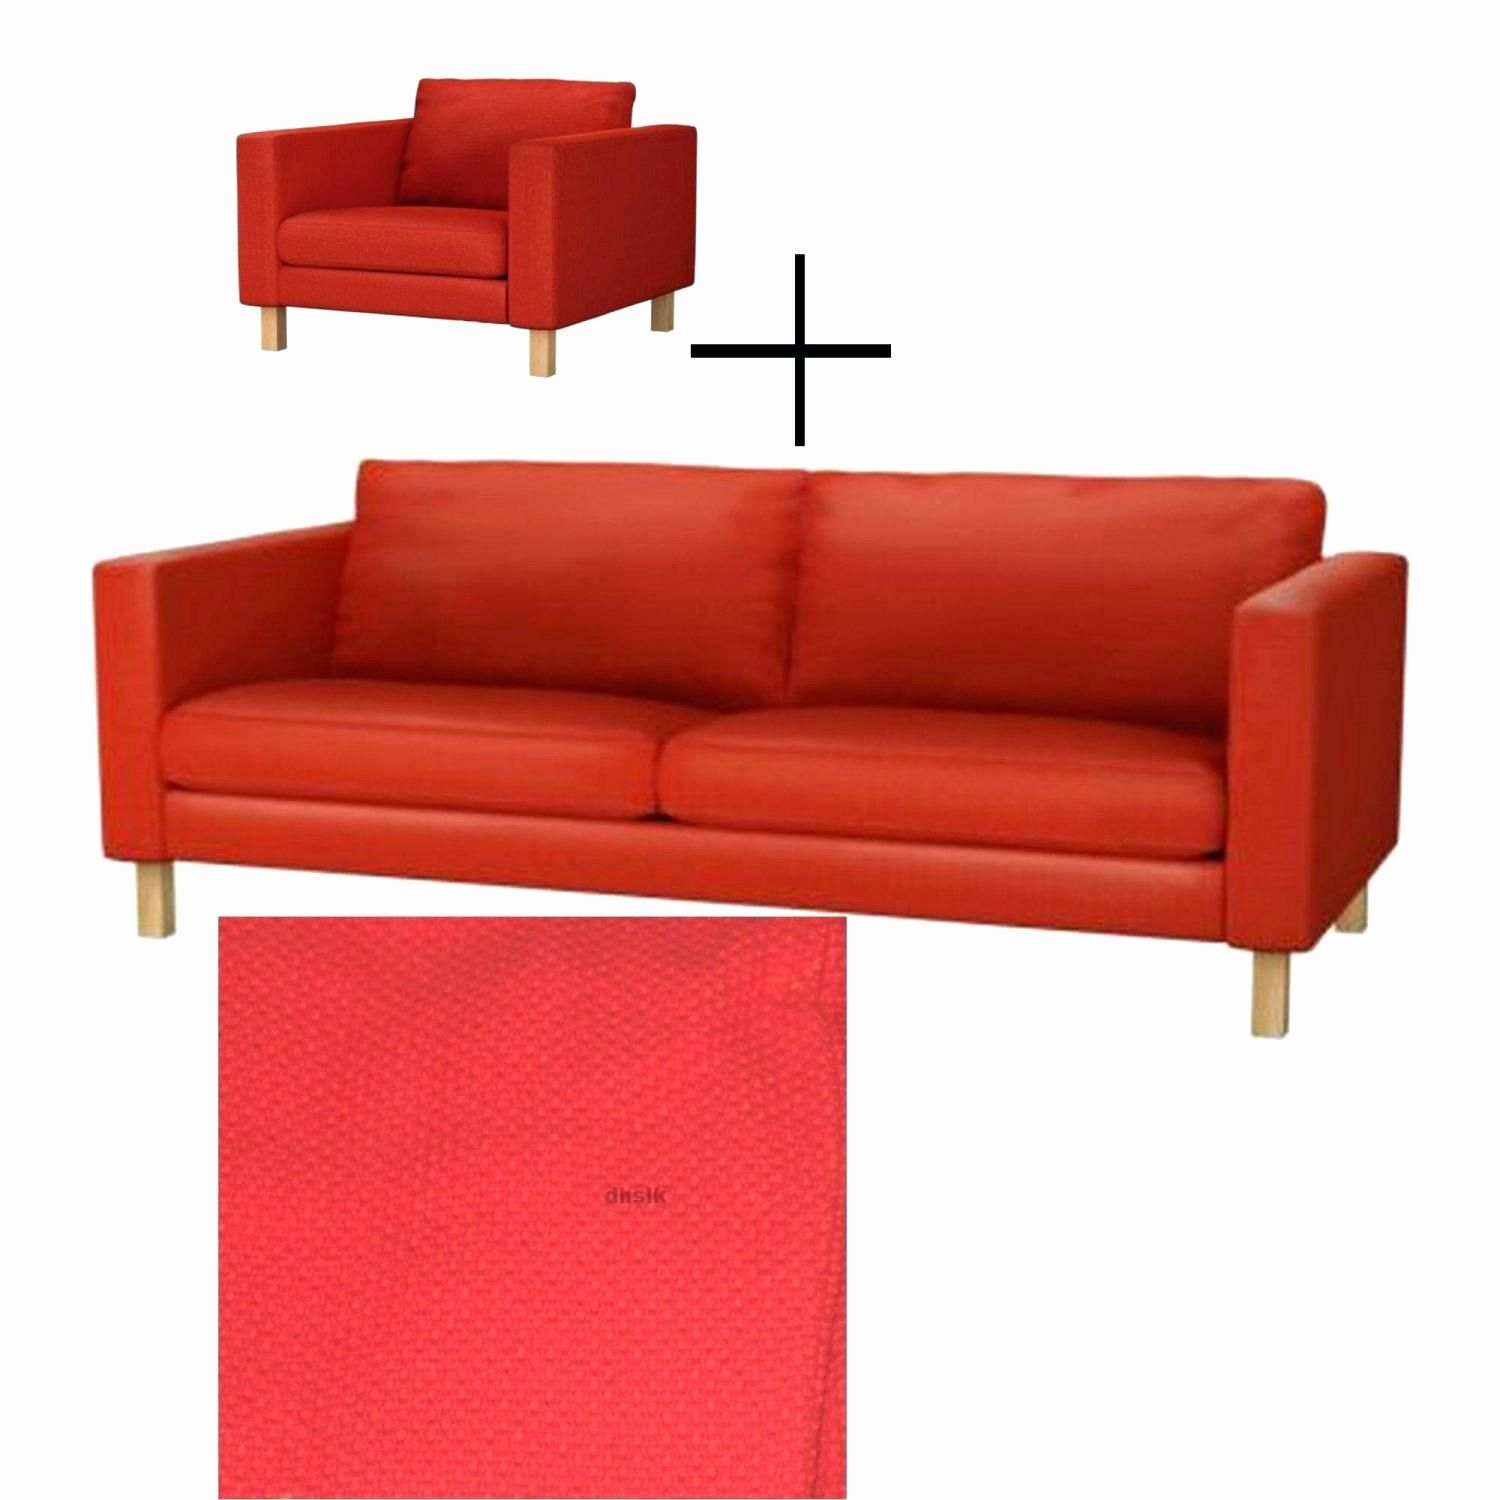 Luxury Red Sofa Covers Art Red Sofa Covers Unique Ikea Karlstad Armchair  Cover Smarthomeideas Win